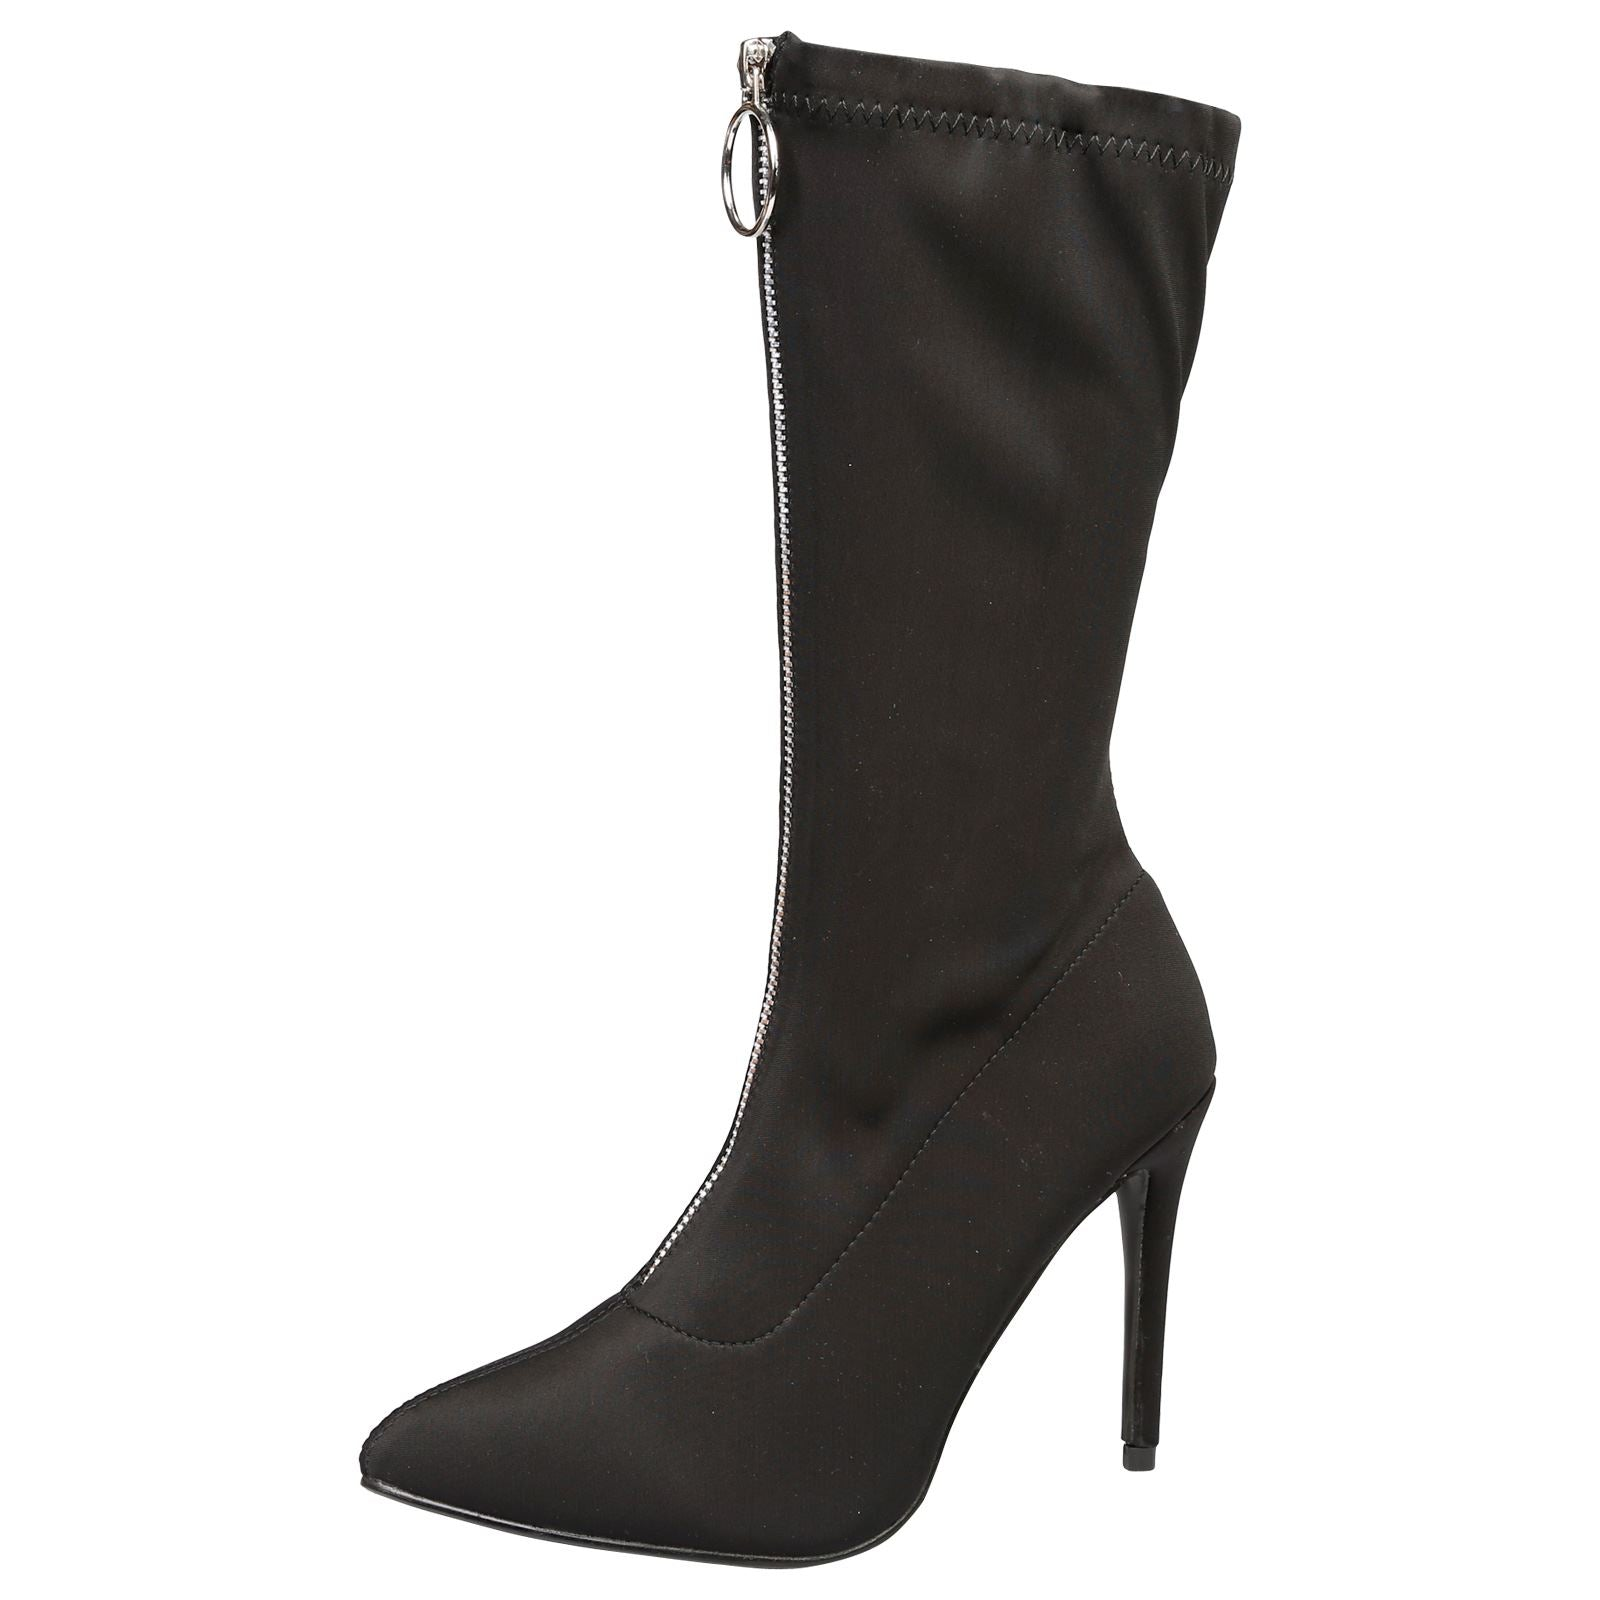 Cynthia Stilleto Heel Mid Calf Boots in Black - Feet First Fashion